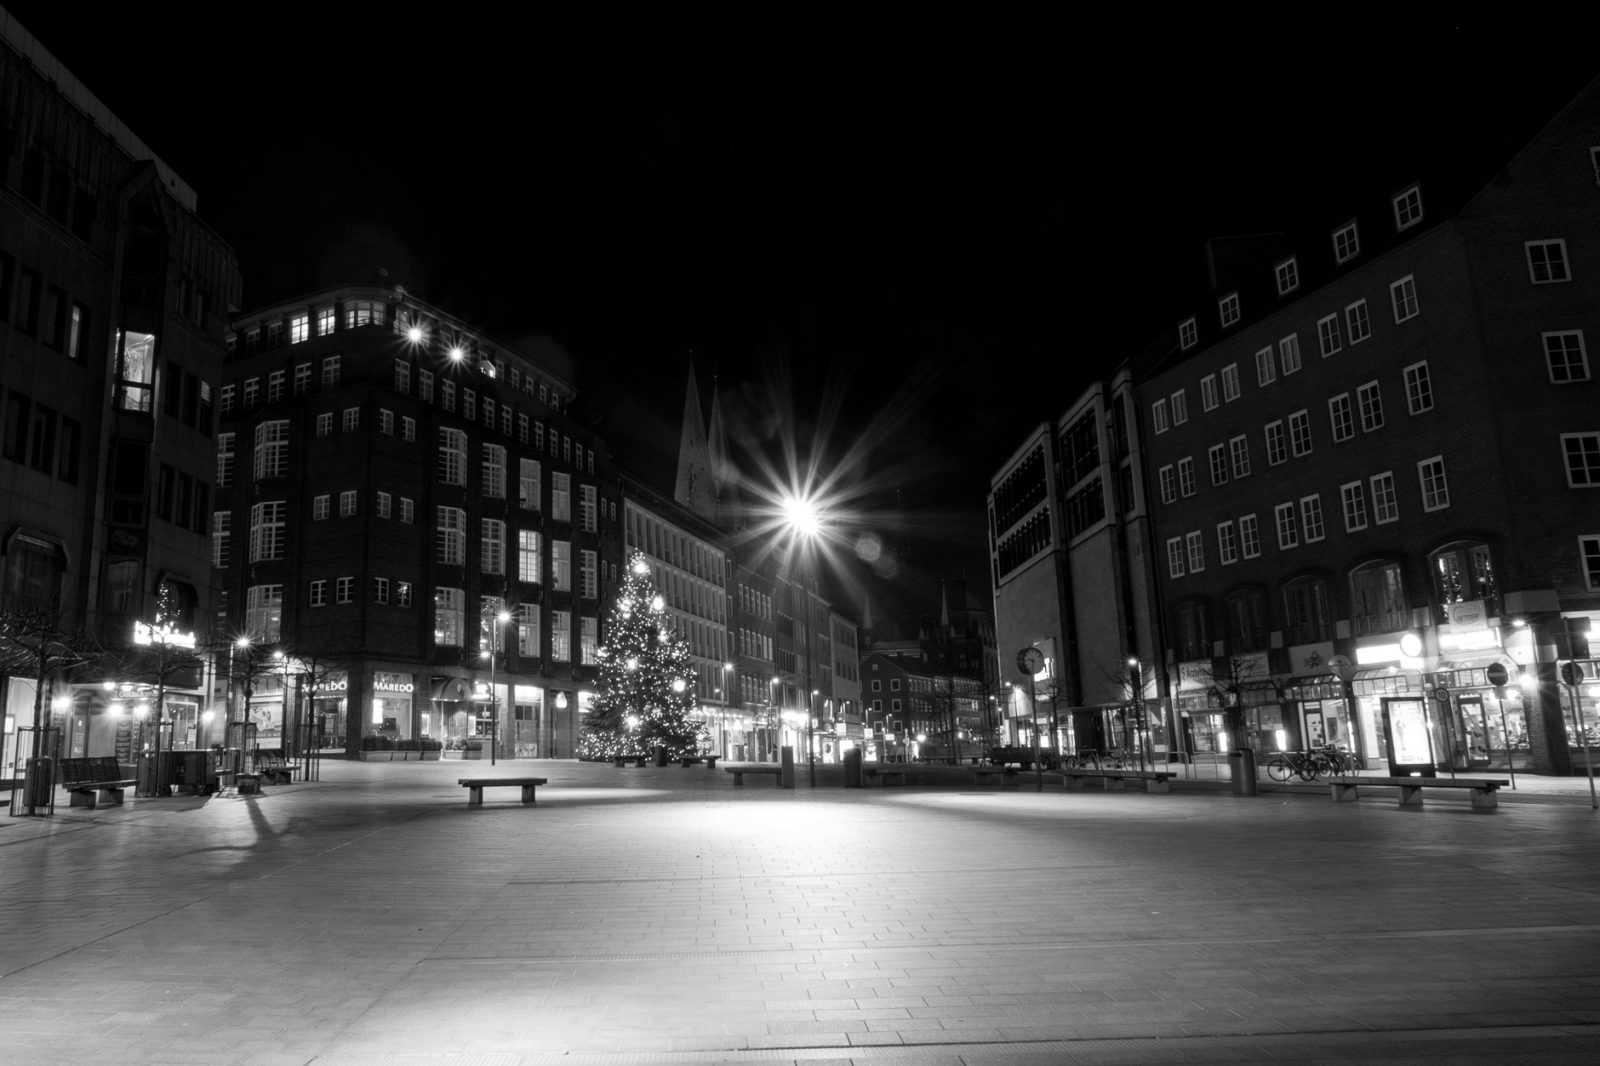 Night photography in Lübeck, Germany - The city square